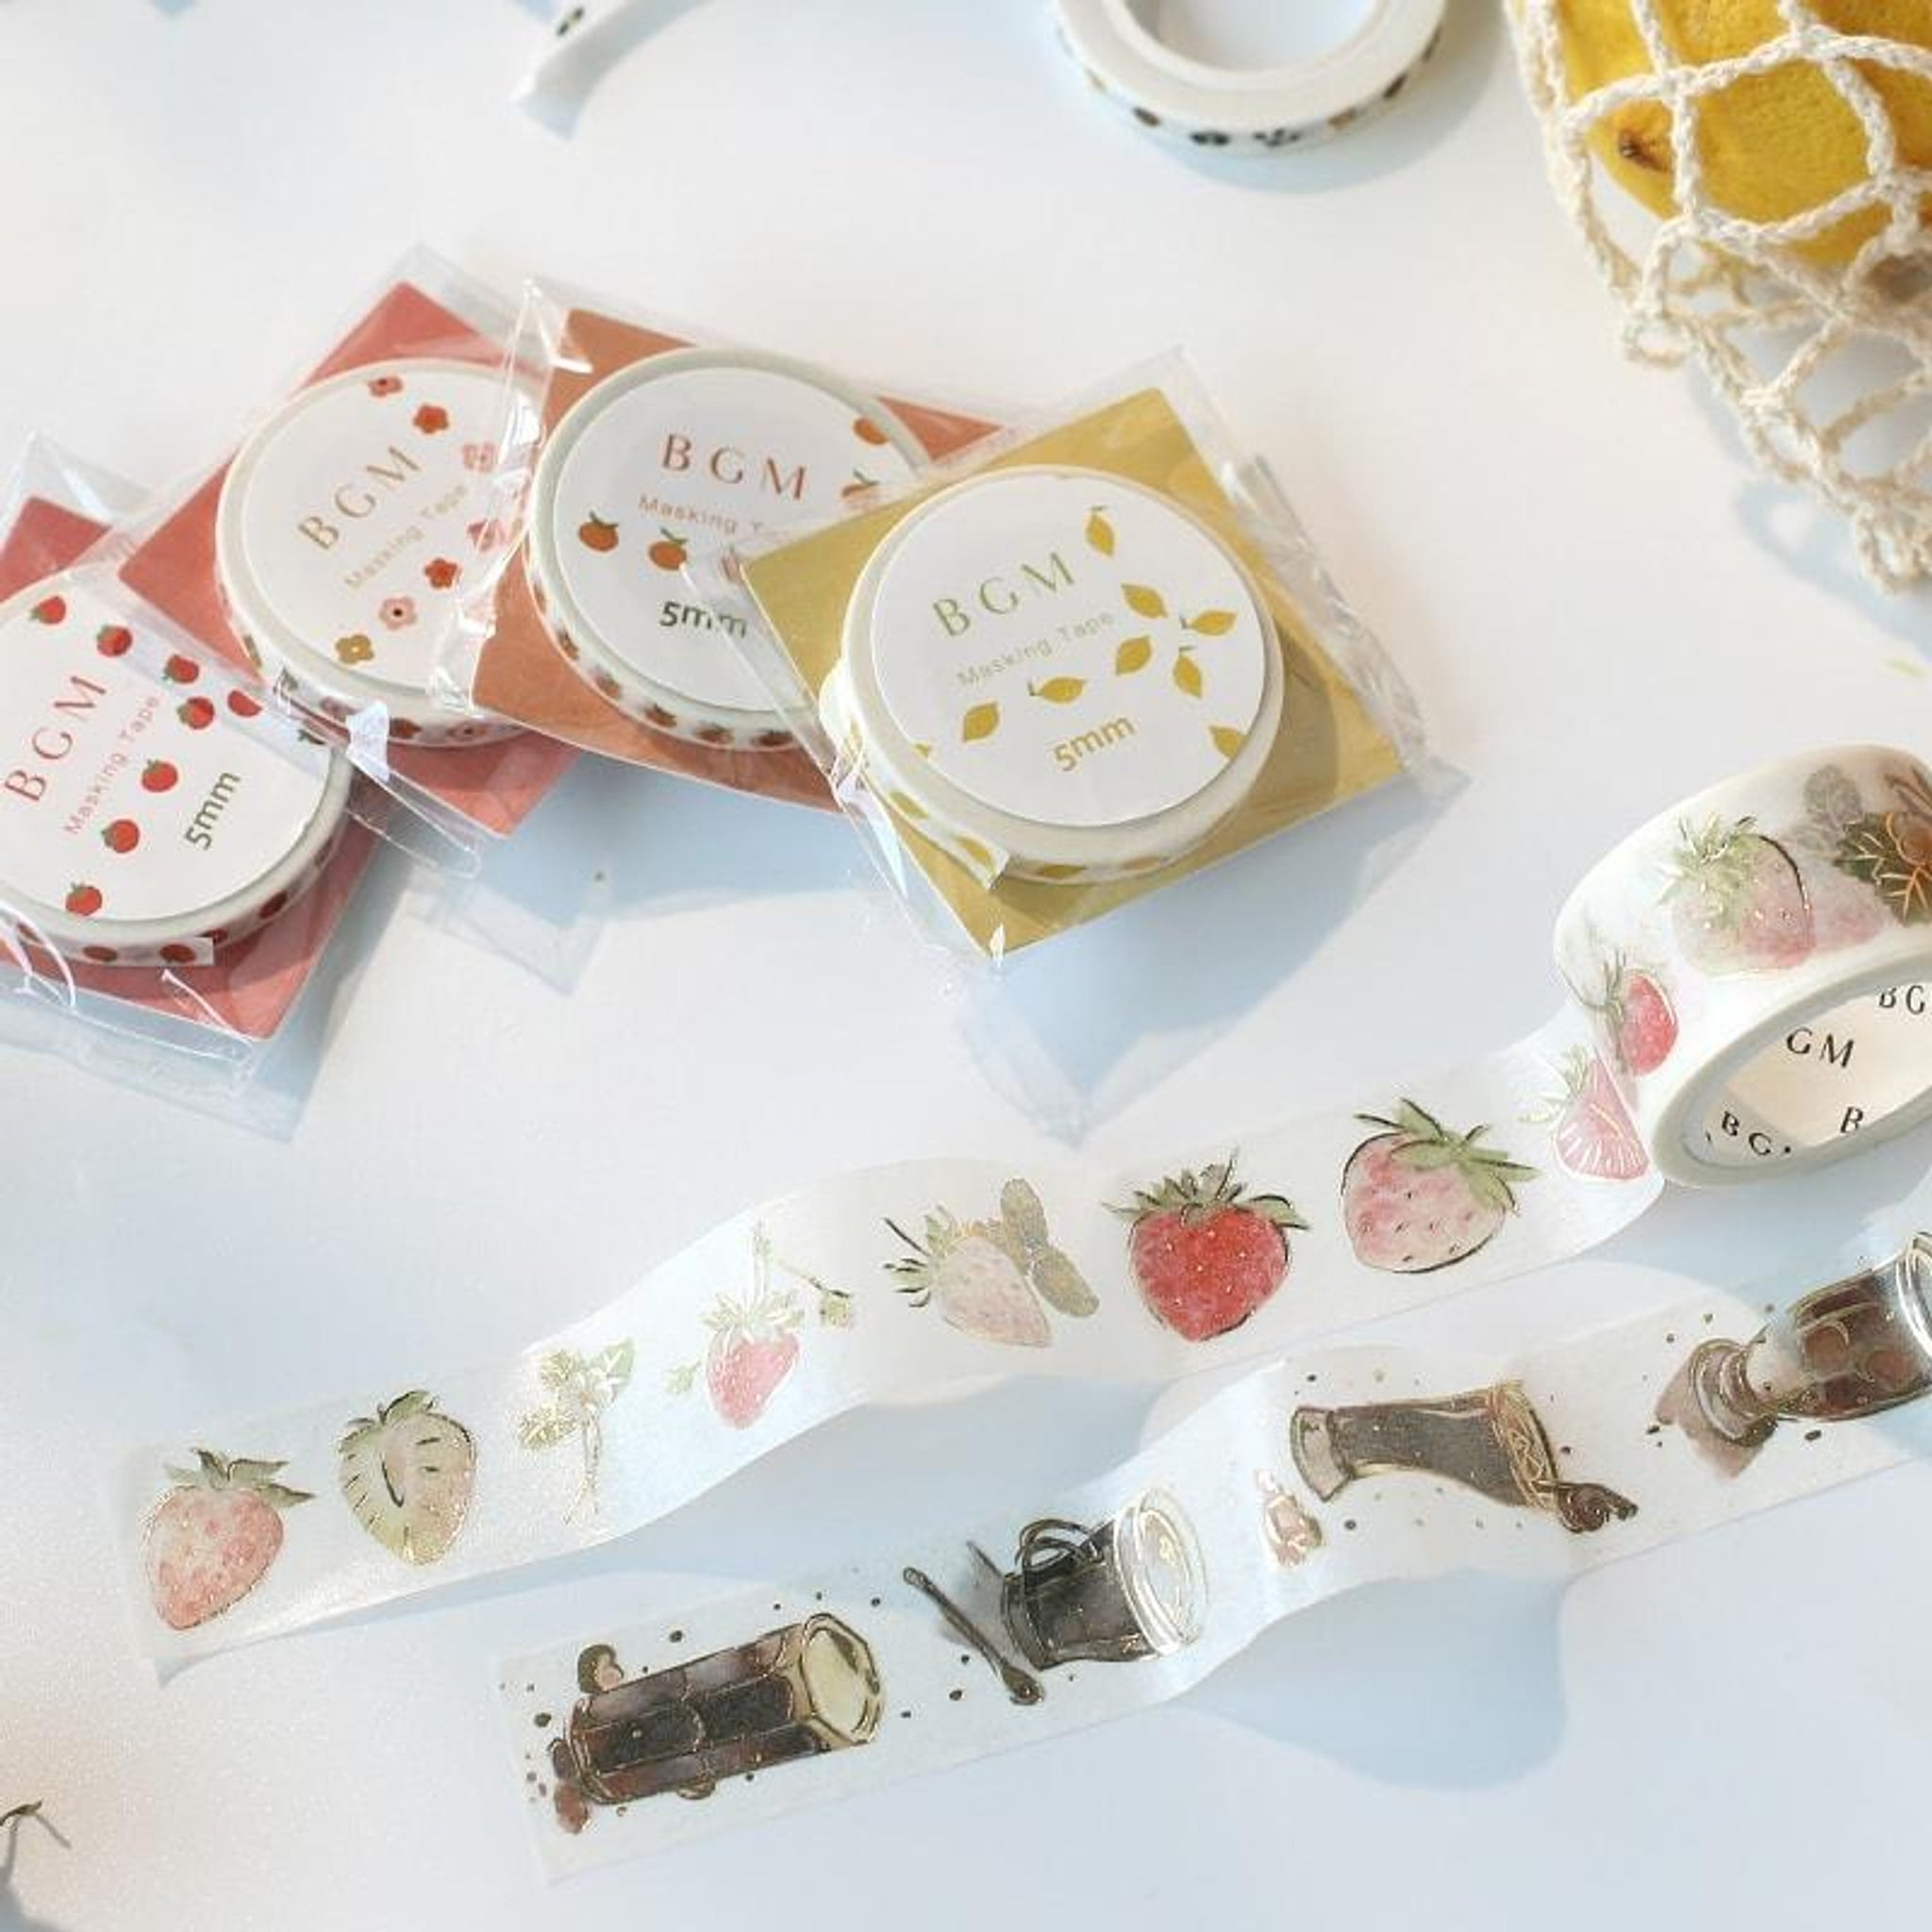 BGM Tiny Flower Washi Tape